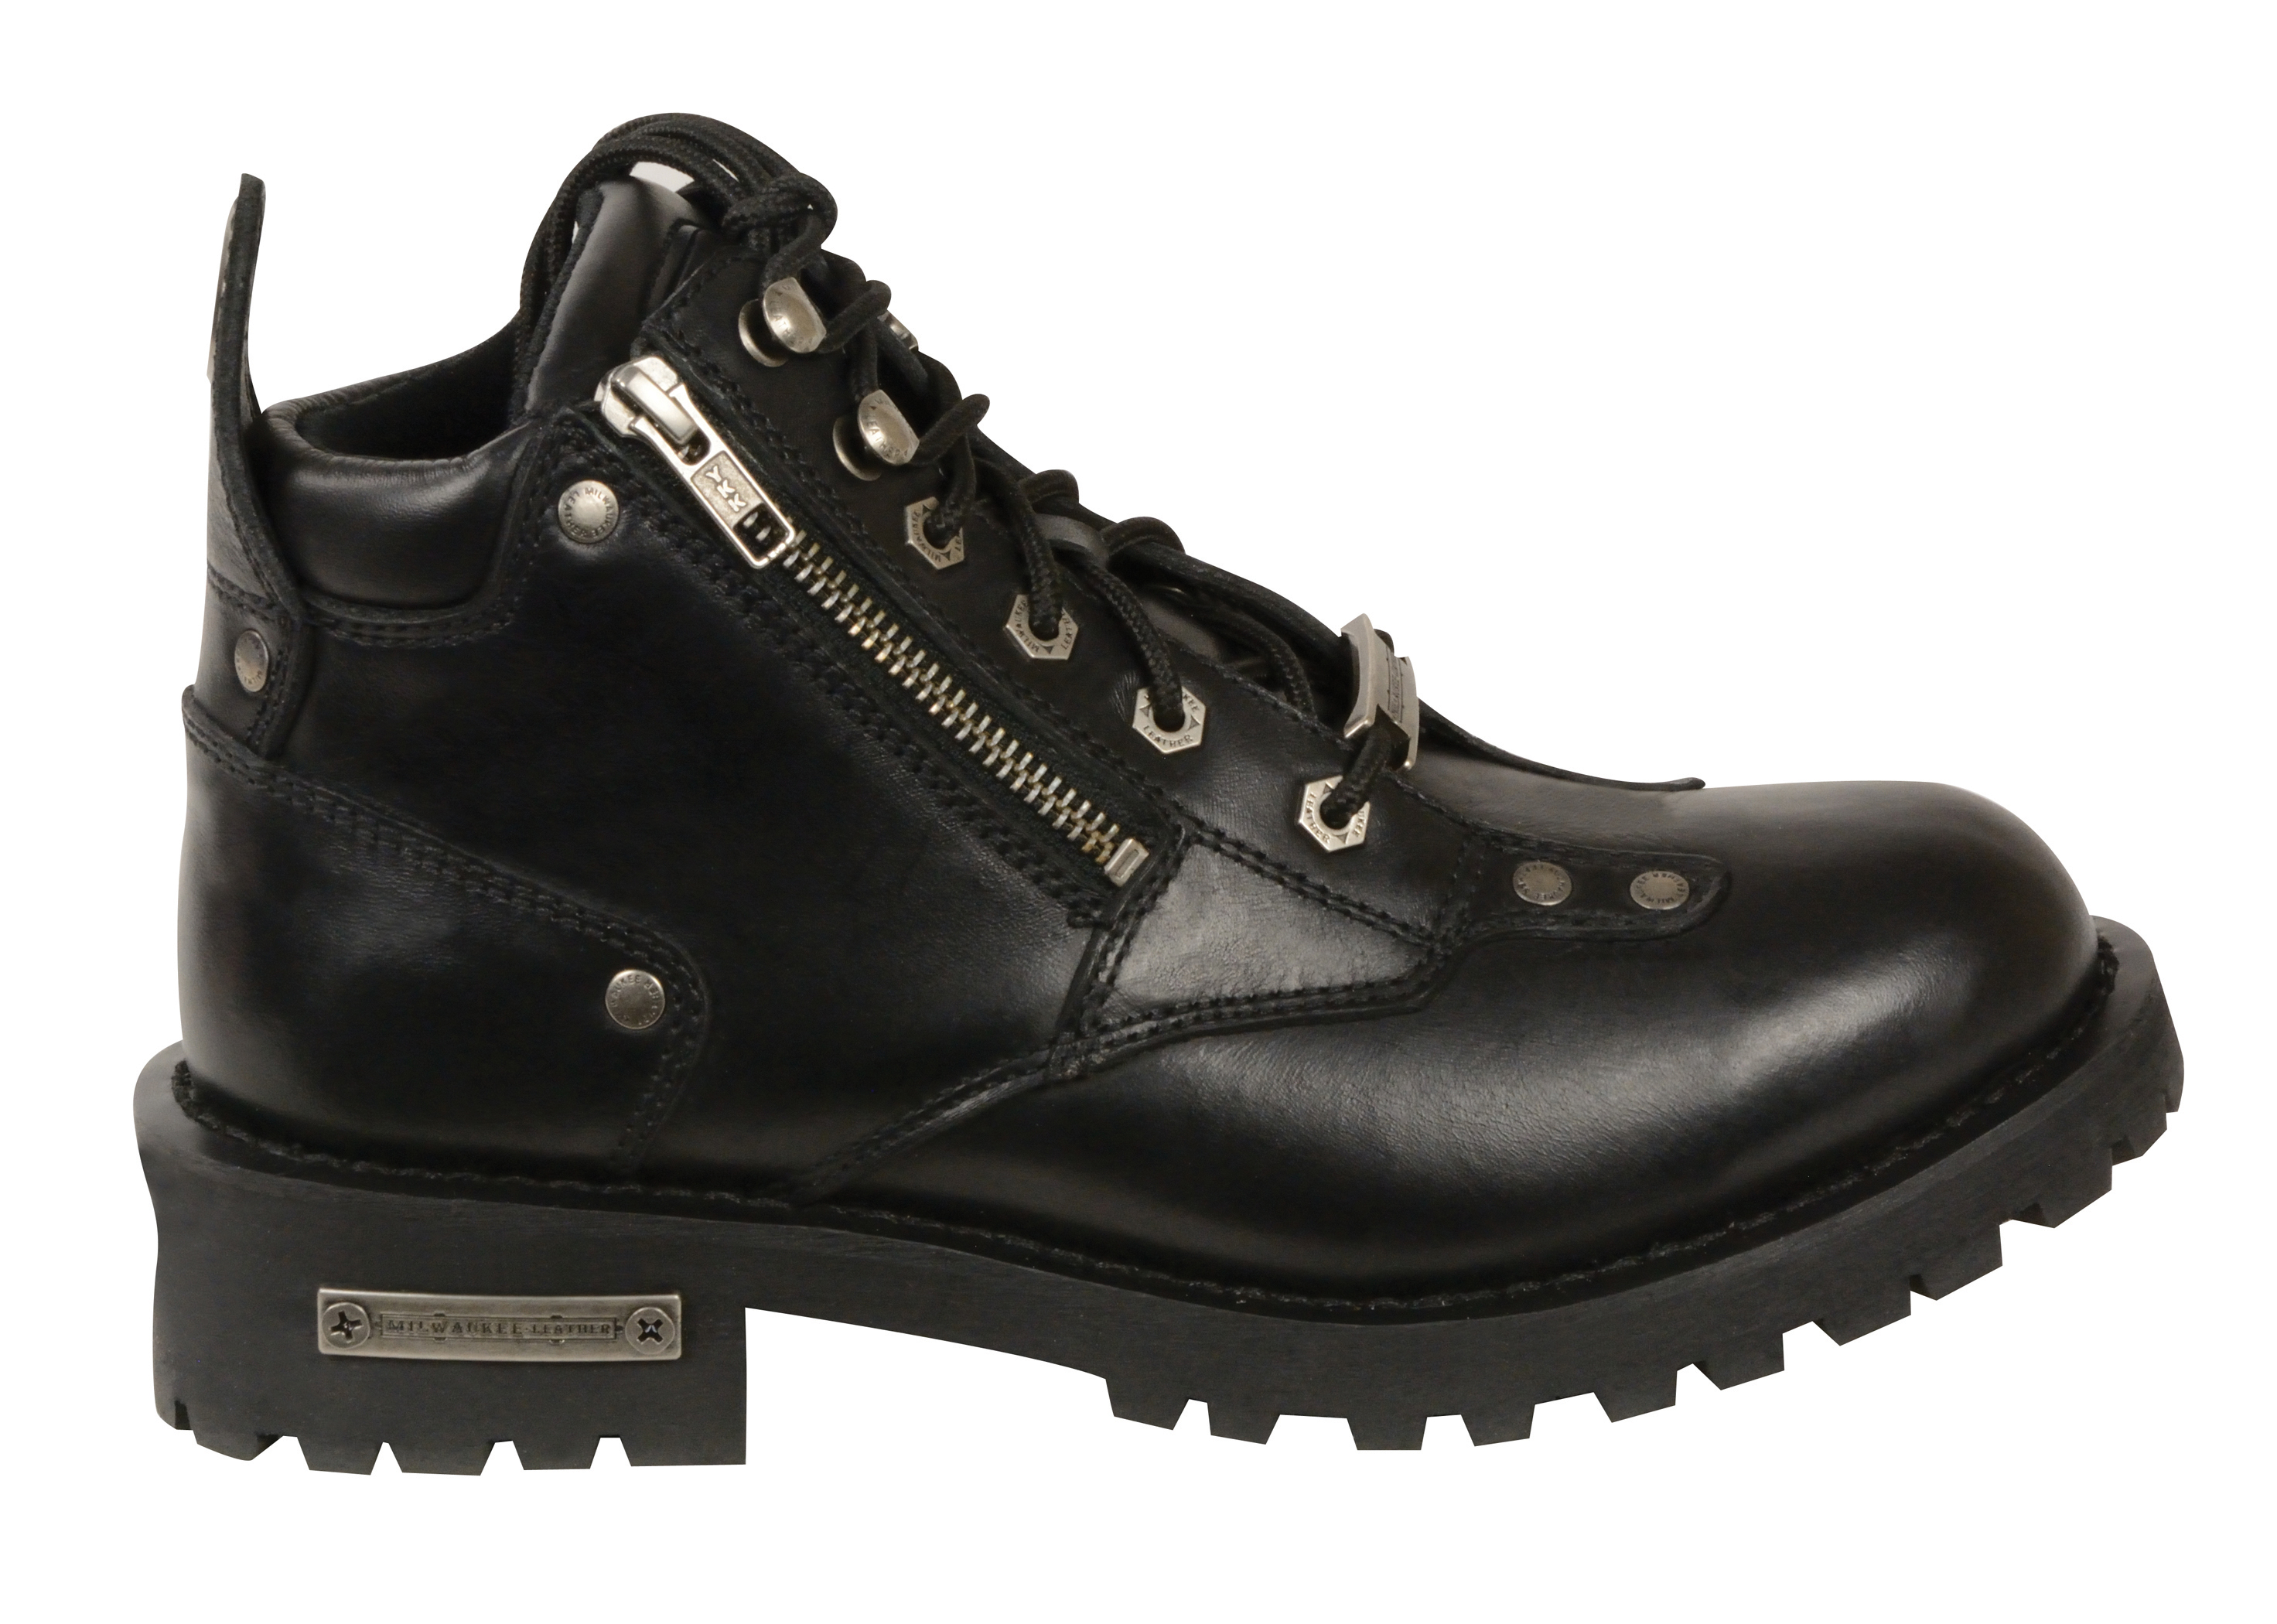 Leather Hiking Boots and Low-Cut Work Boots Step, move, climb and walk easier in leather hiking boots and low-cut work boots from GEMPLER'S. Thick outsoles provide a good grip and prevent slips.